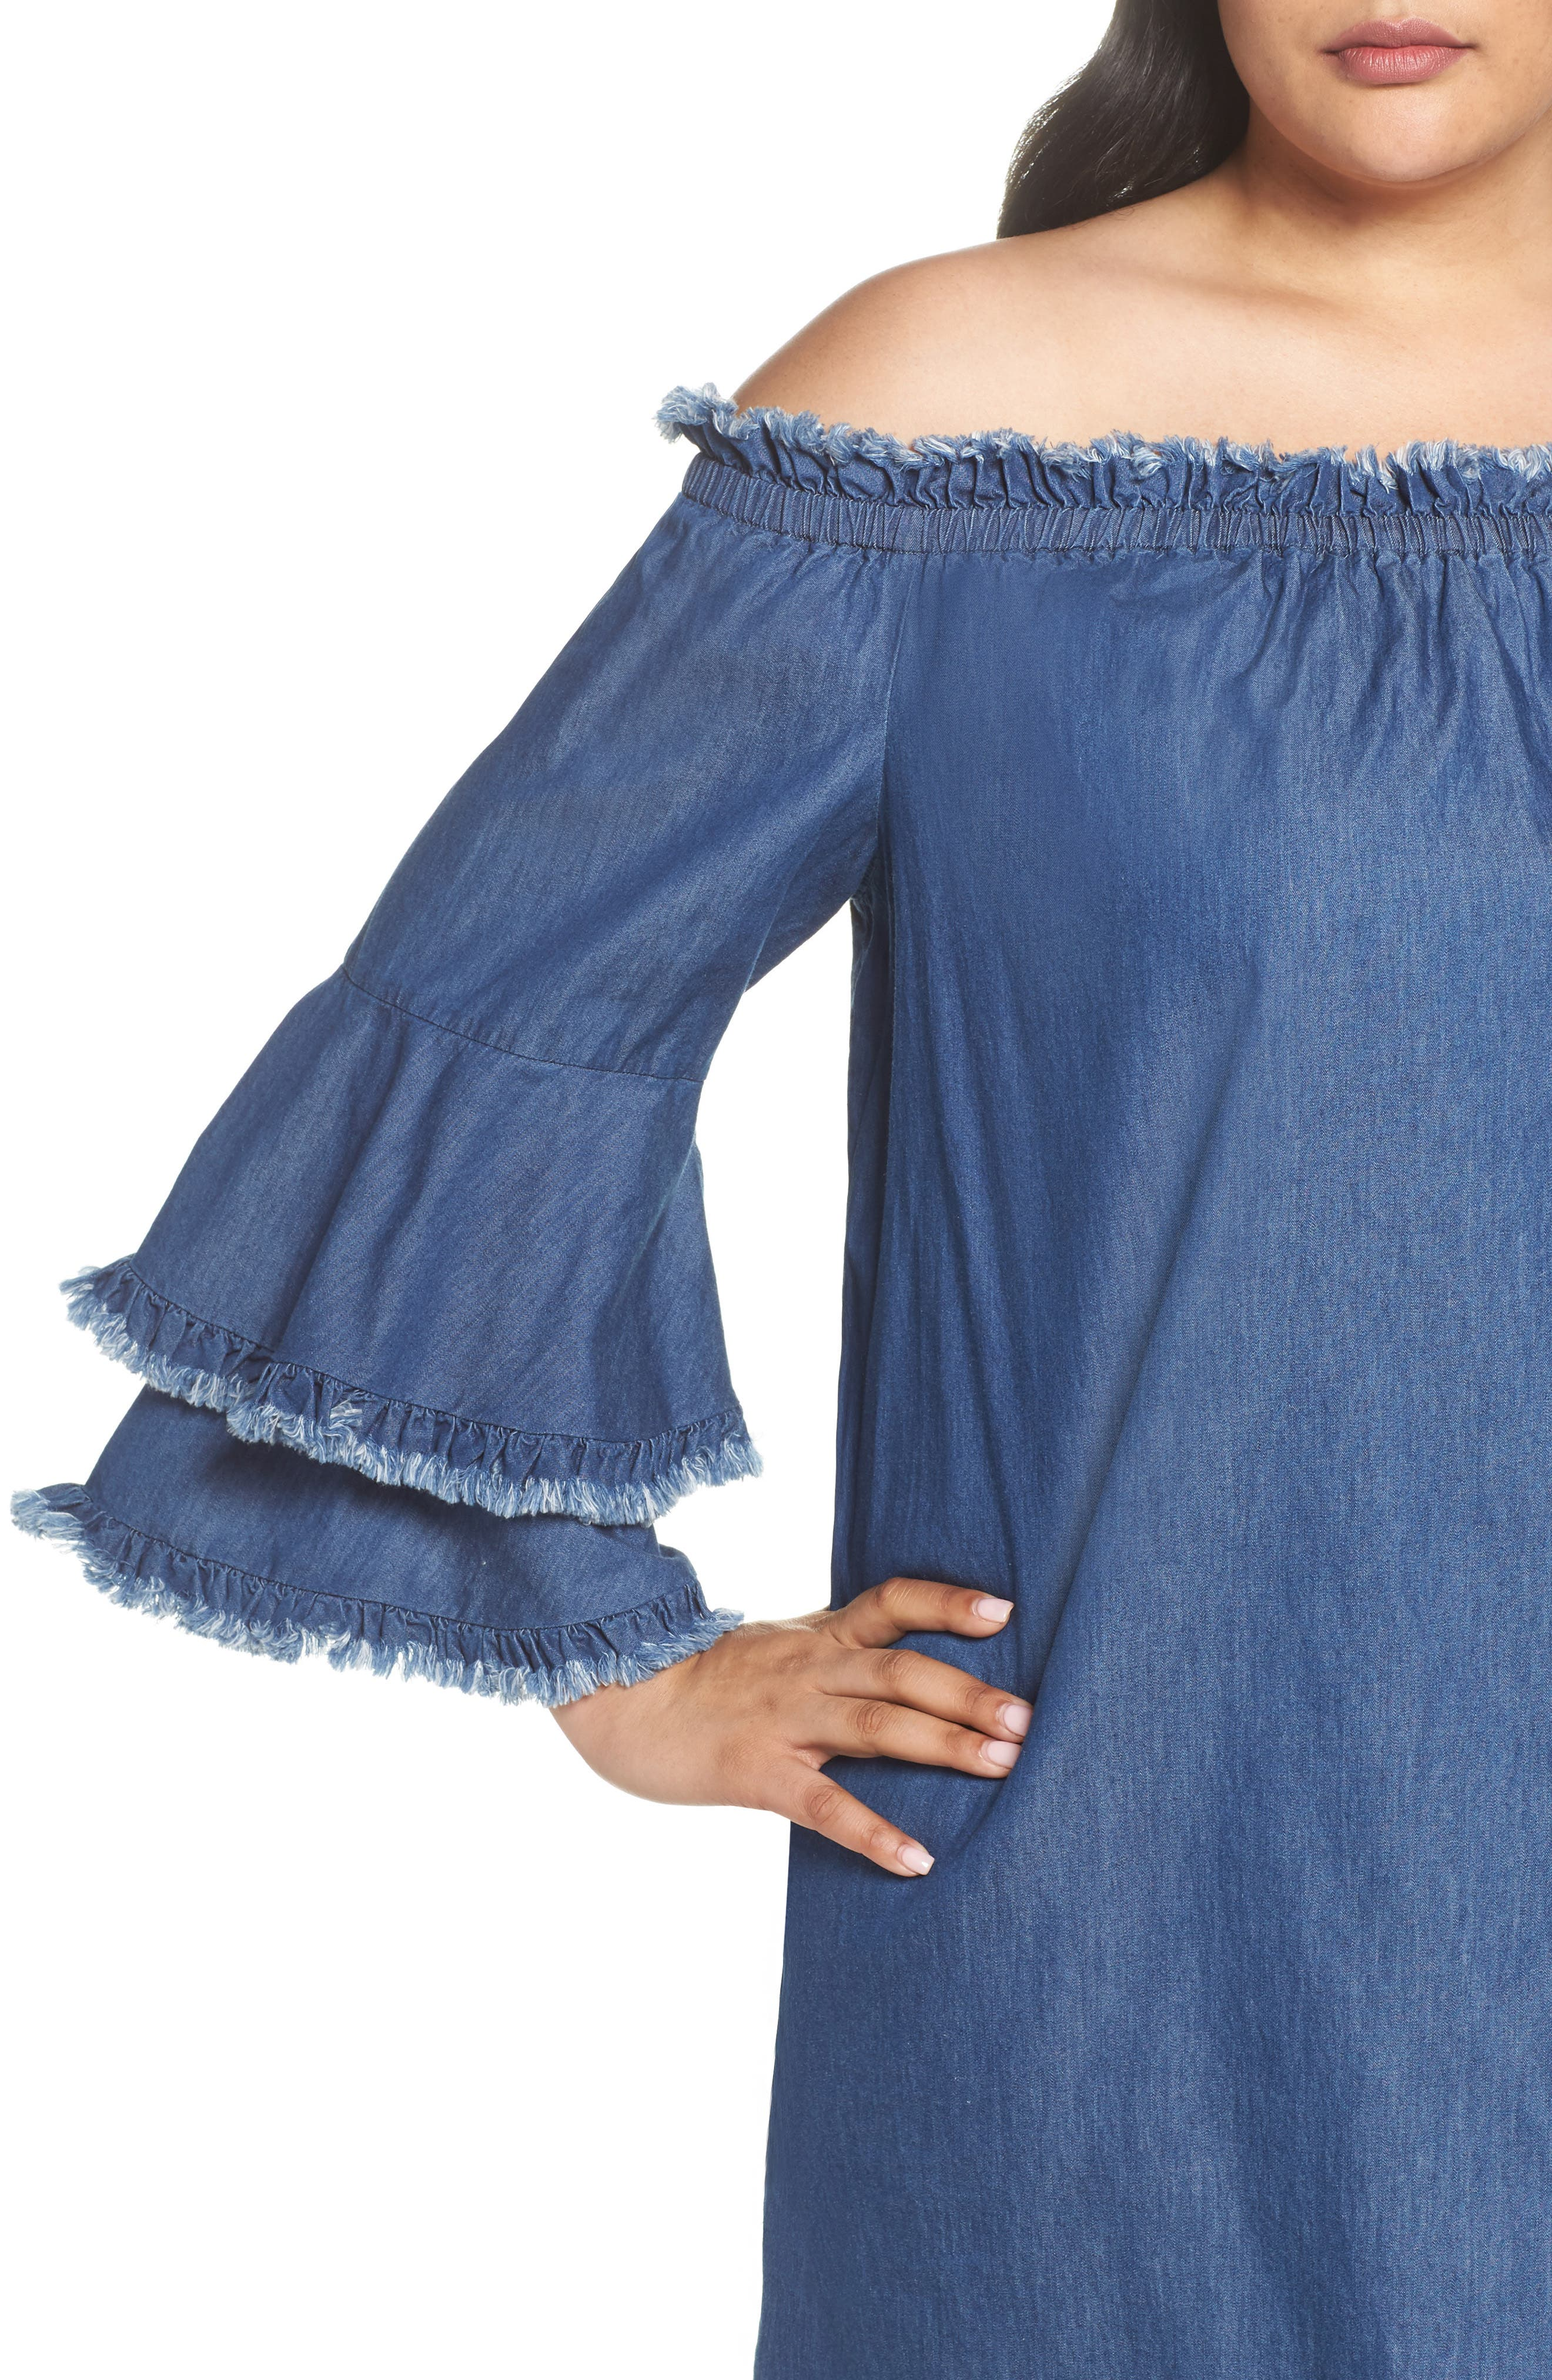 Bell Sleeve Off the Shoulder Denim Shift Dress,                             Alternate thumbnail 4, color,                             INDIGO